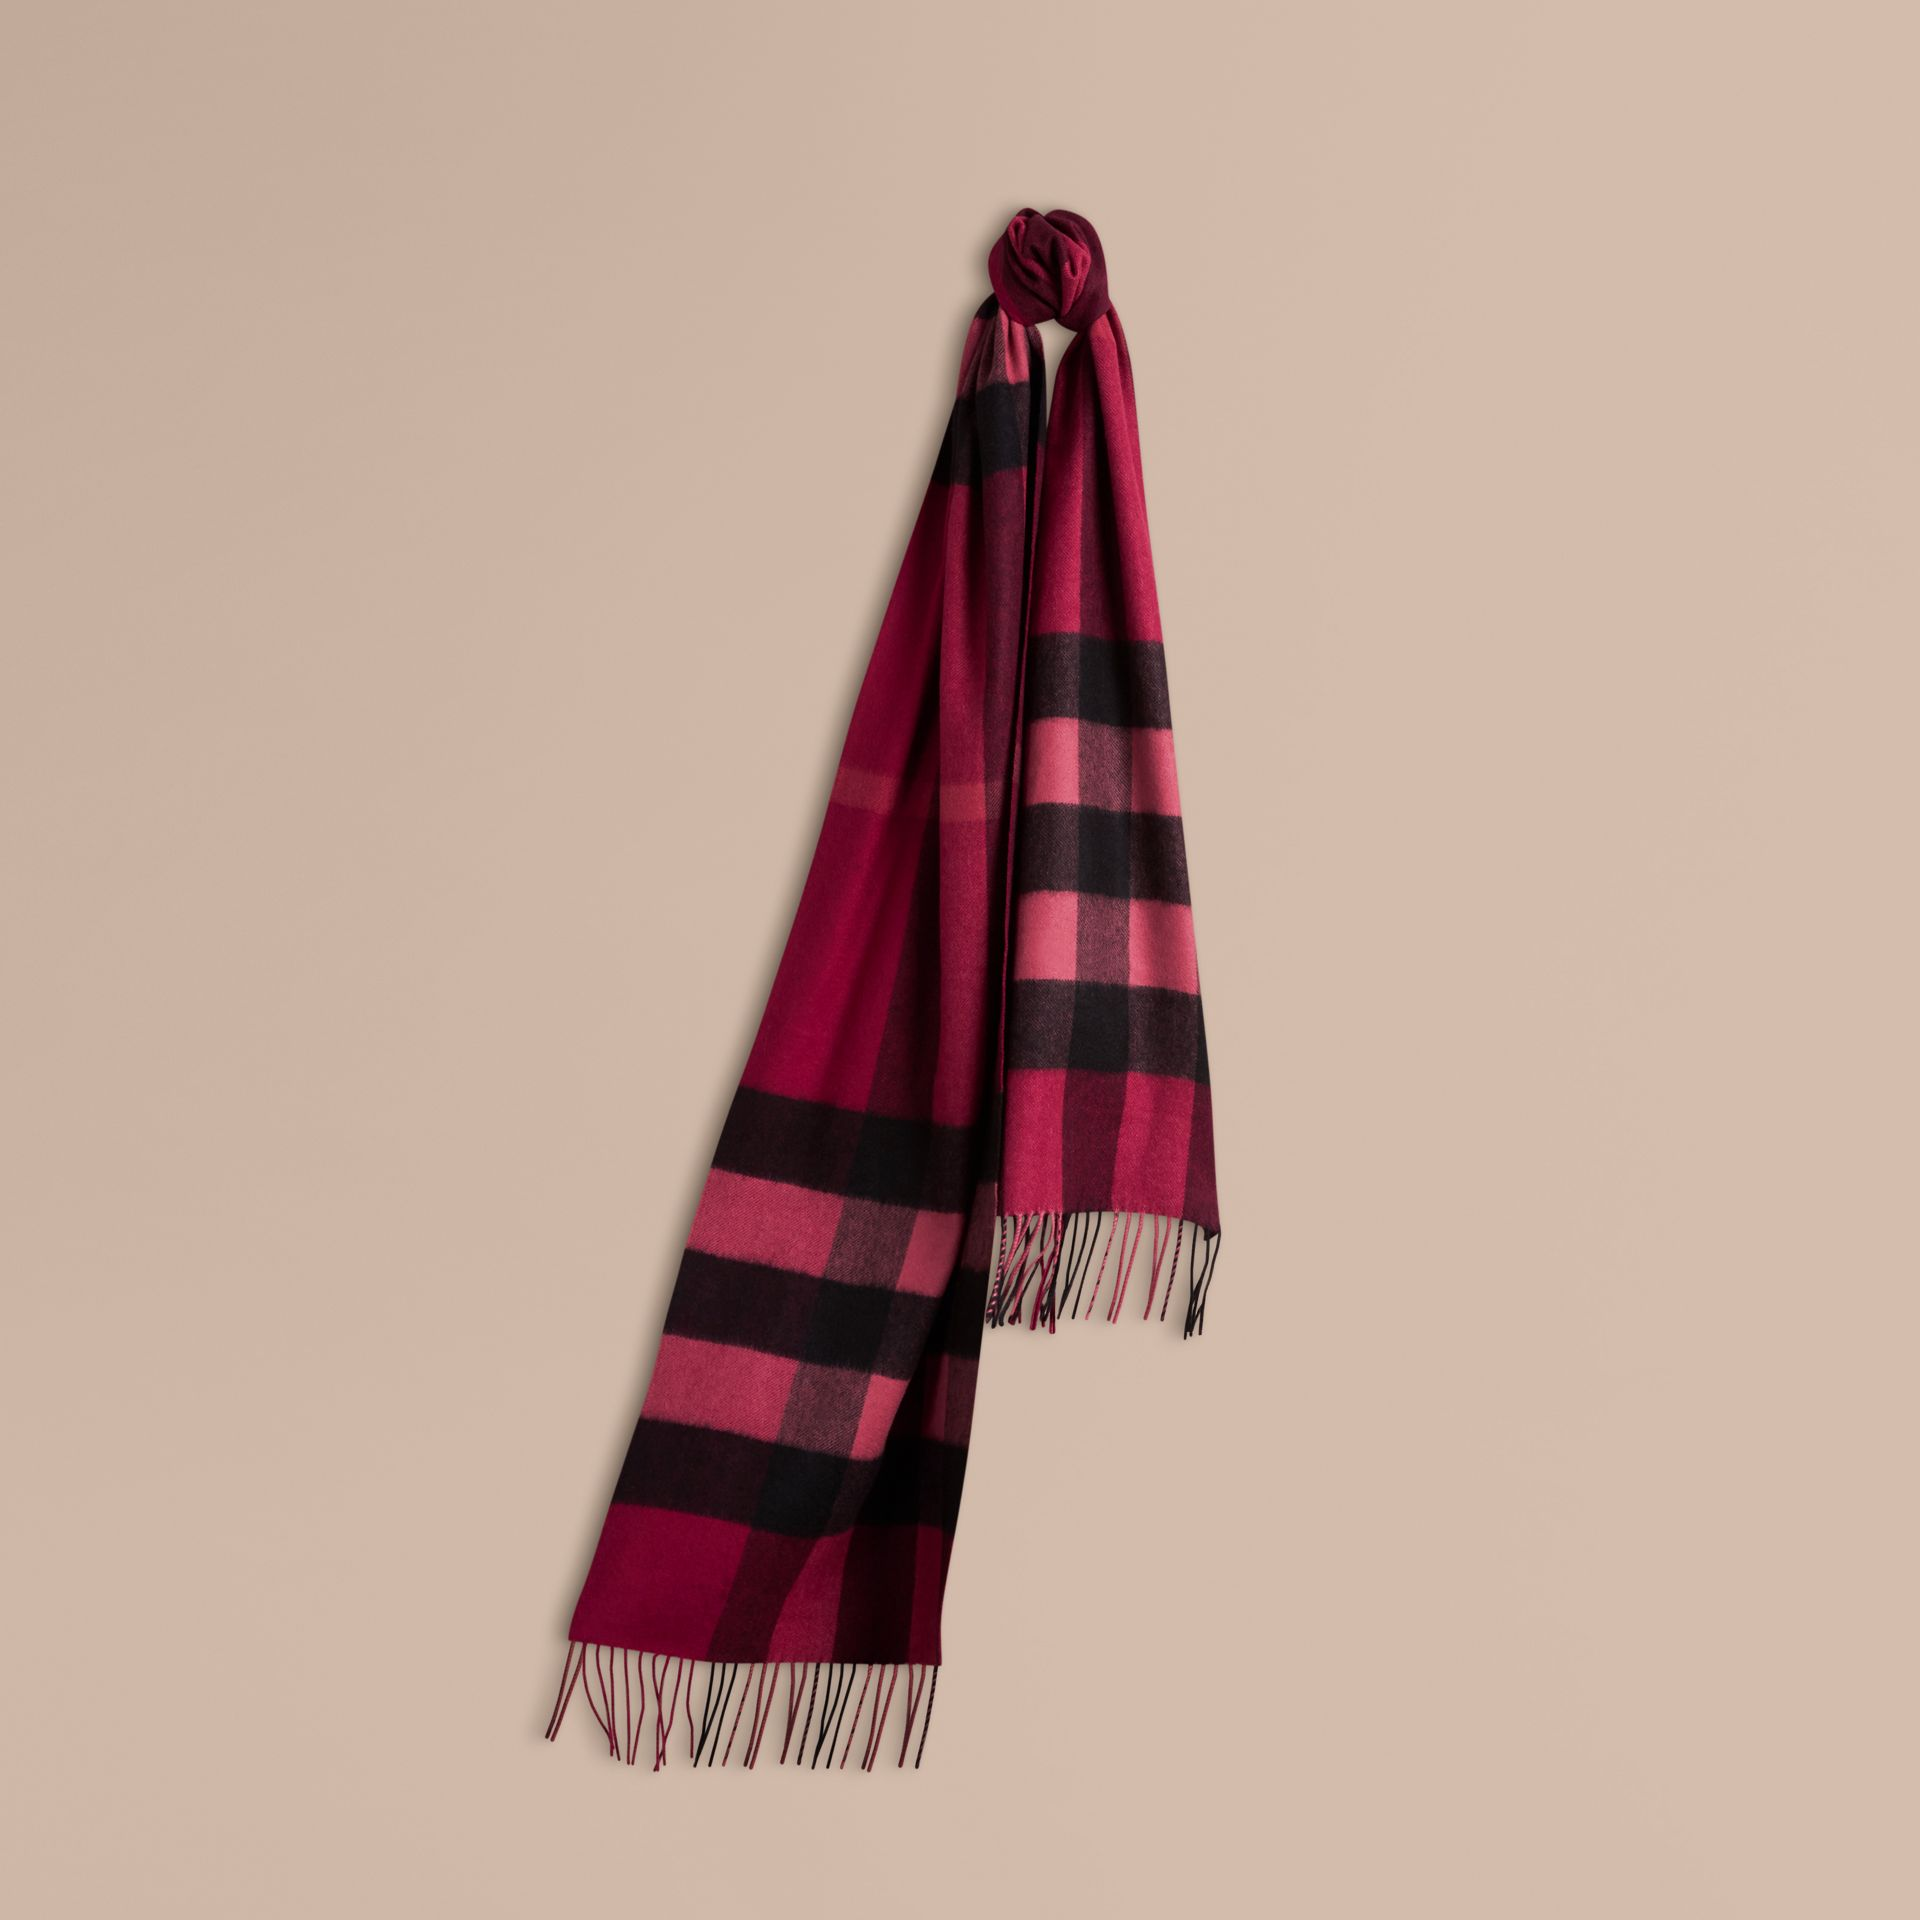 Plum check The Large Classic Cashmere Scarf in Check Plum - gallery image 6